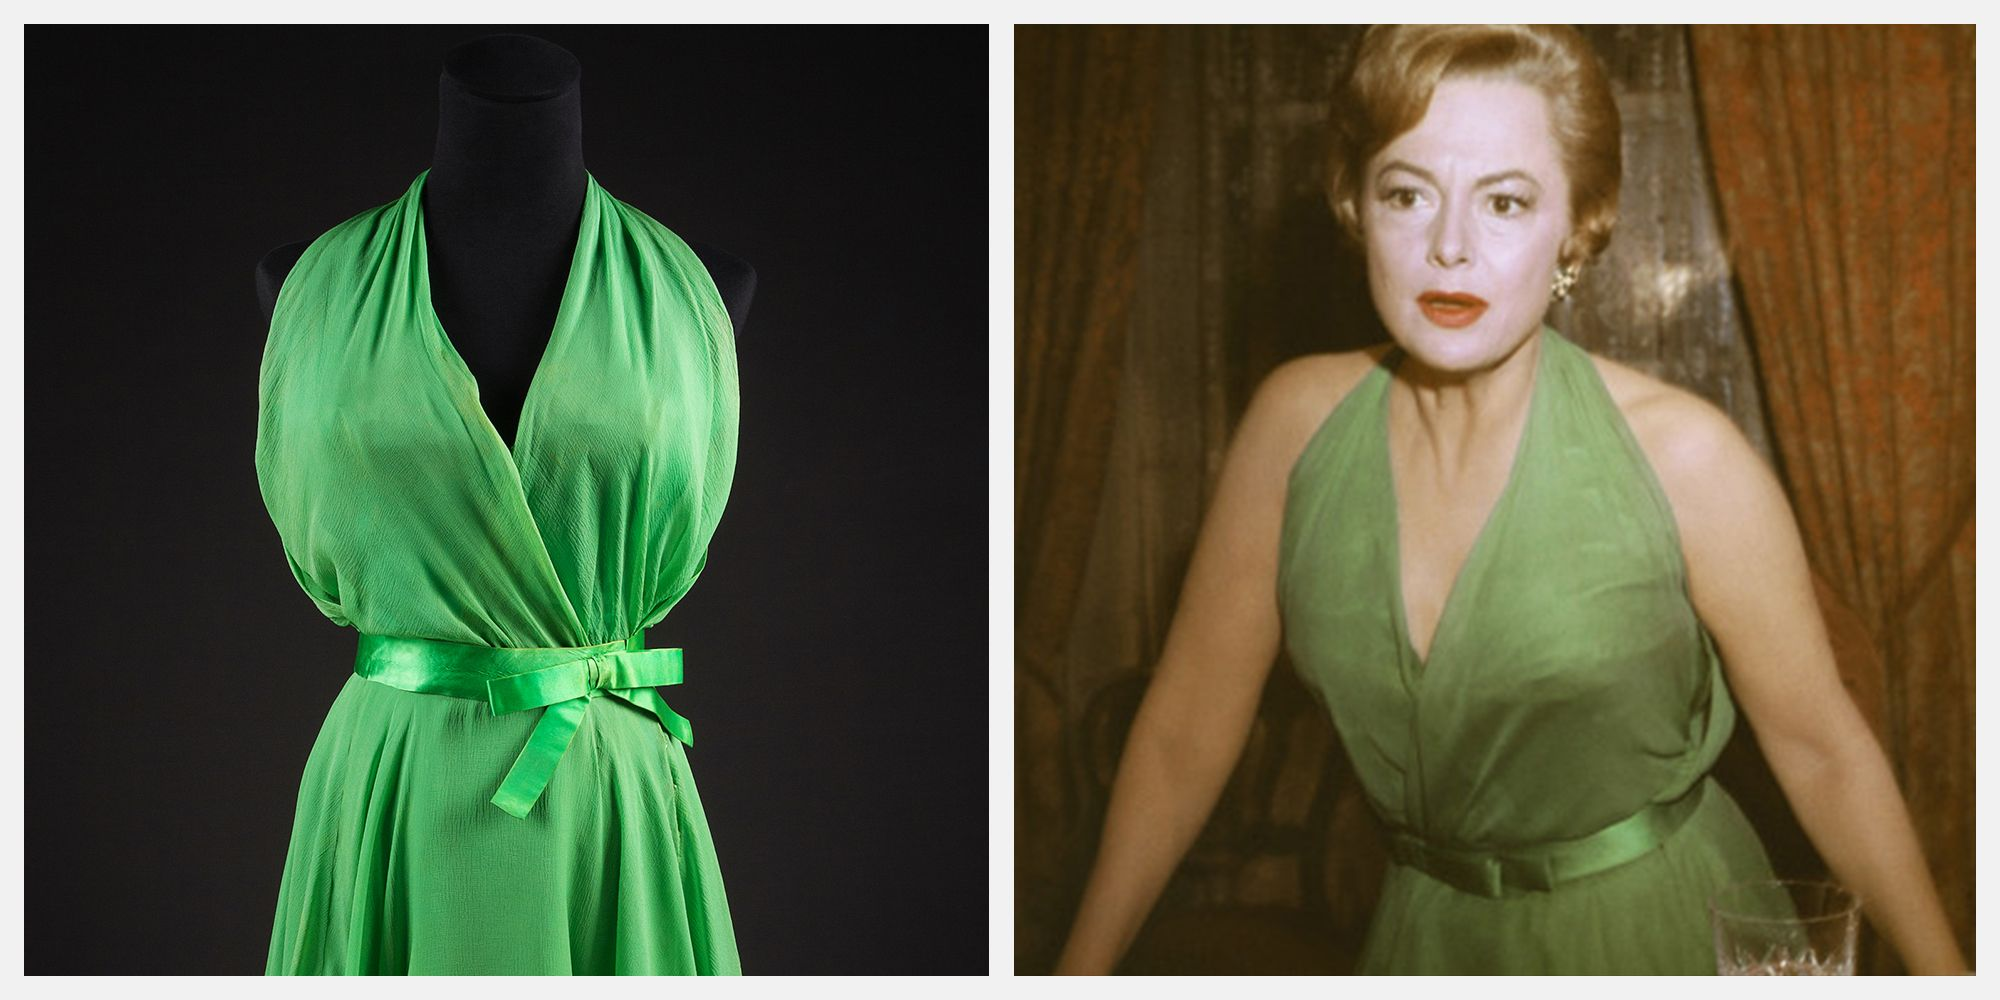 Olivia de Havilland's Collection of Christian Dior Haute Couture is a Film and Fashion Treasure Trove